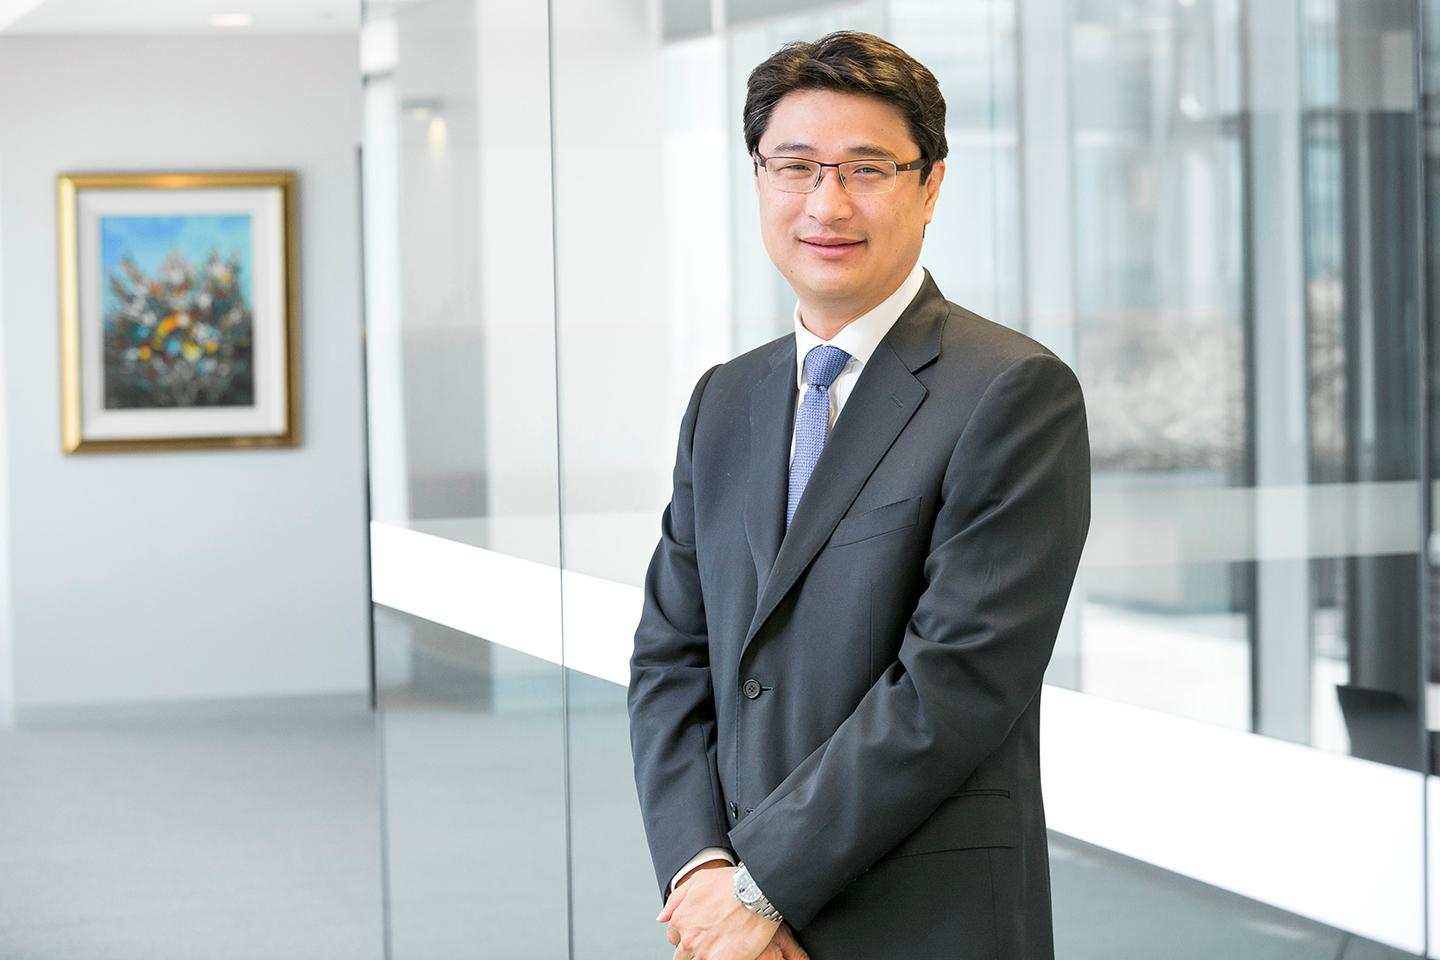 Law firm chasing Asian markets